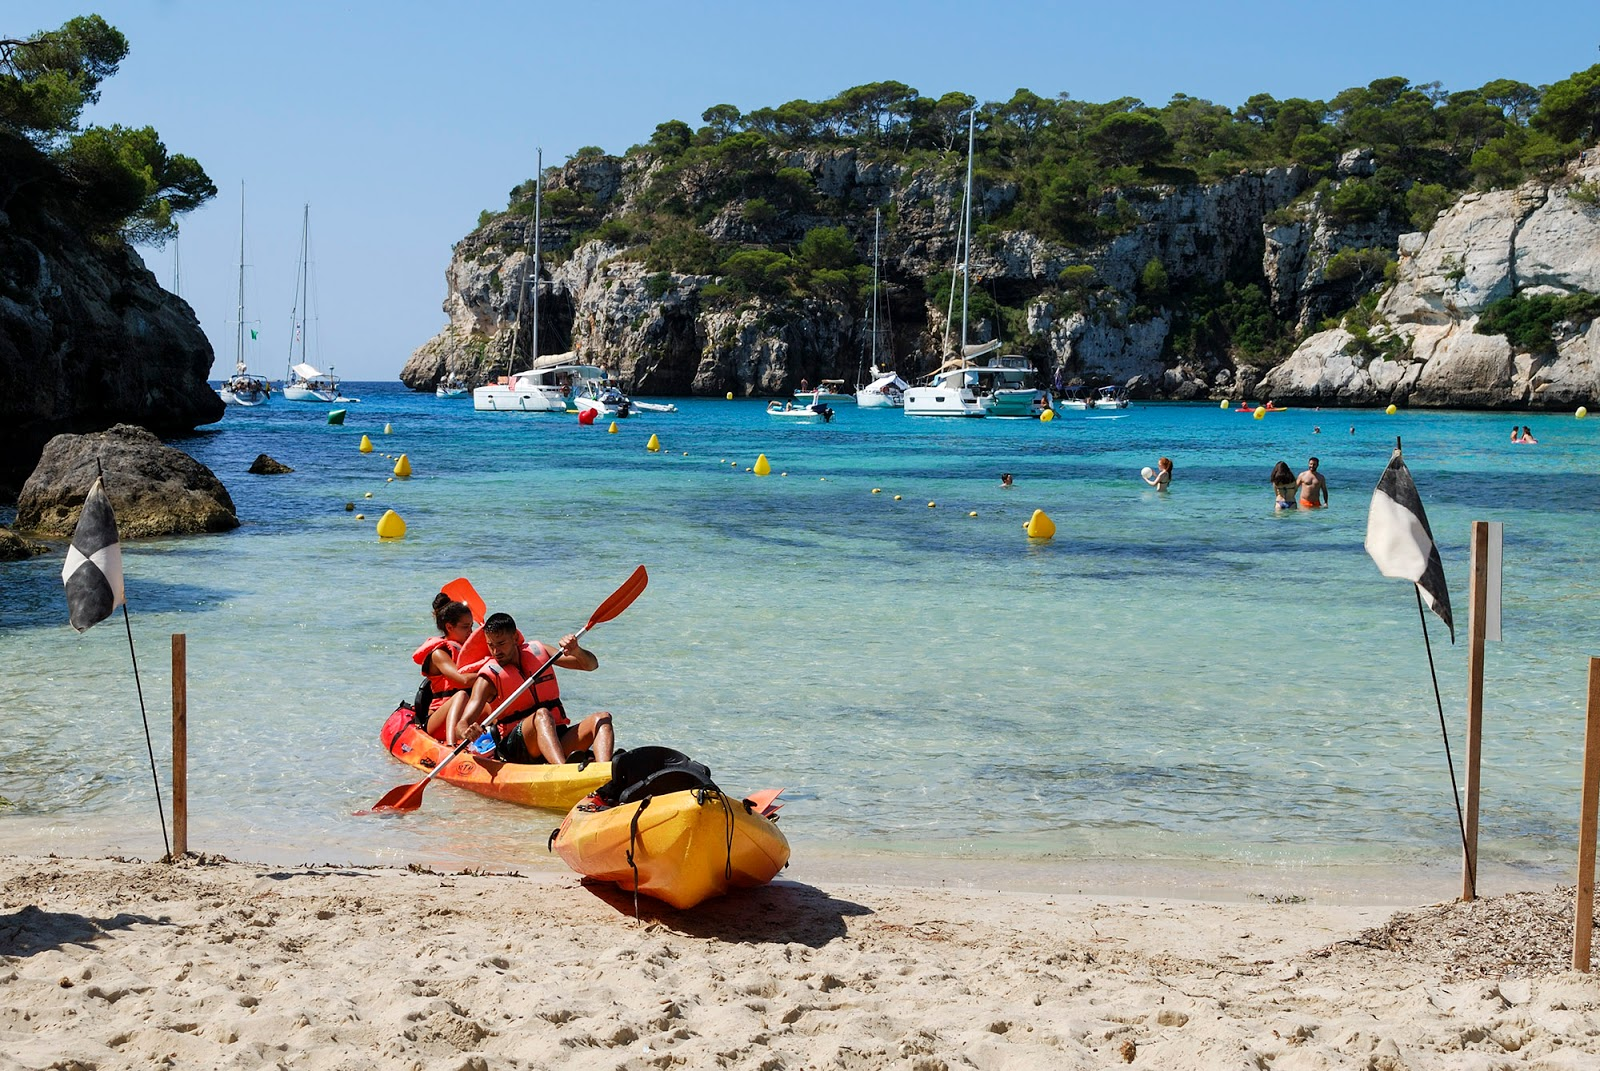 Cala Macarella Menorca Spain kayak itinerary what to do